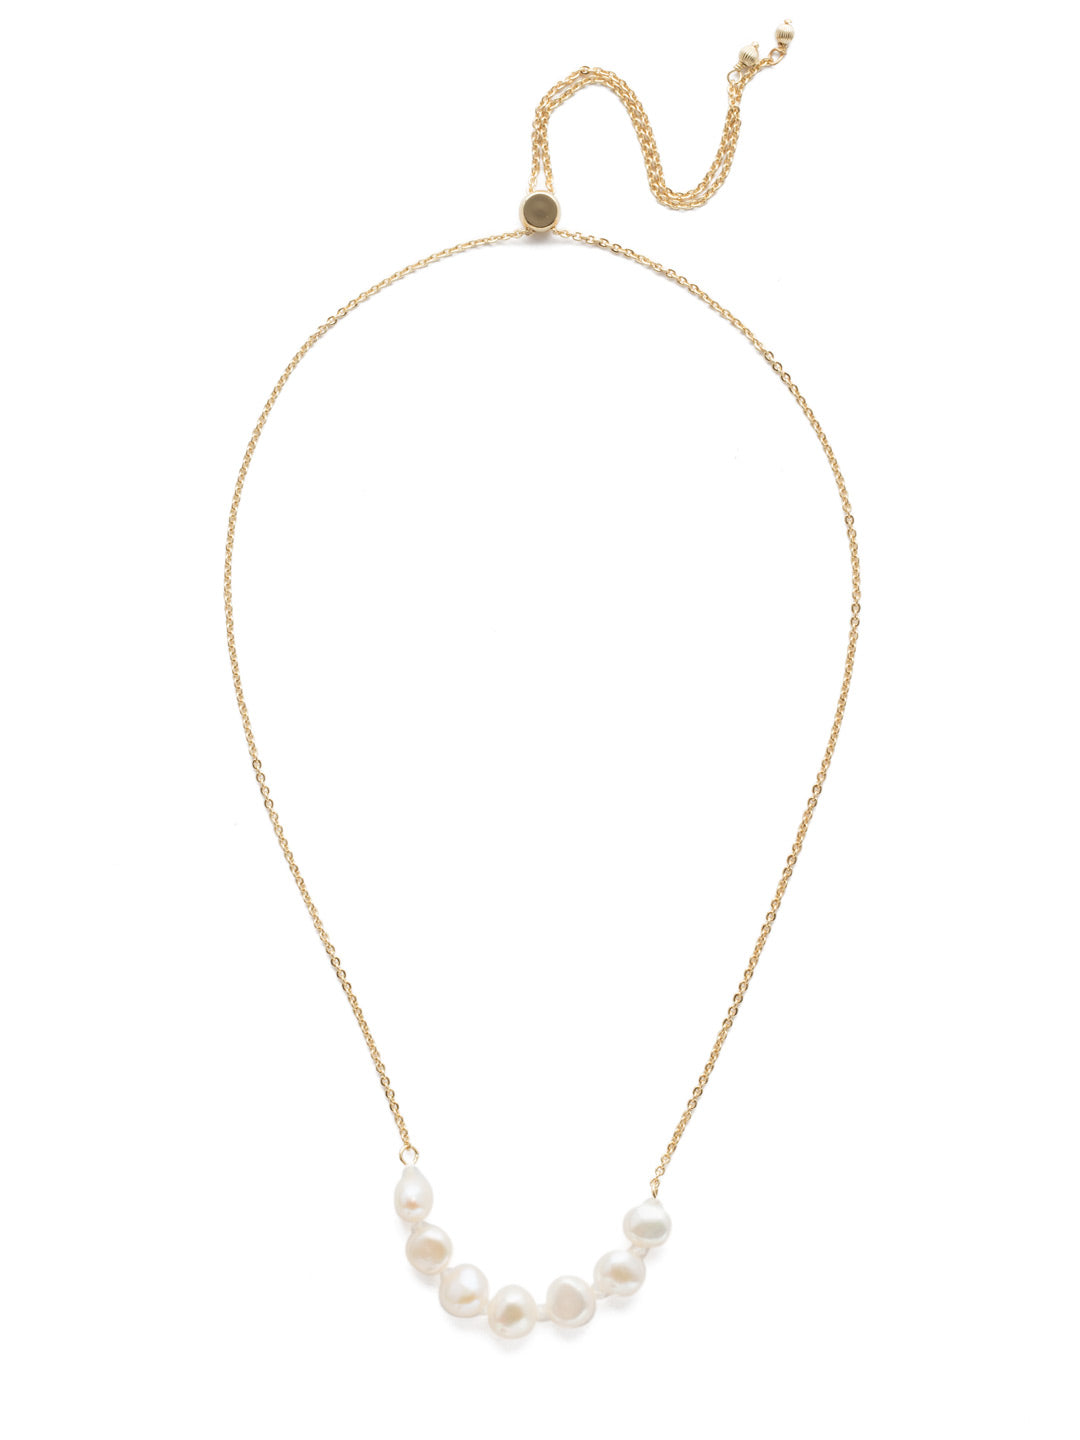 Celeste Long Necklace - 4NEF2BGMDP